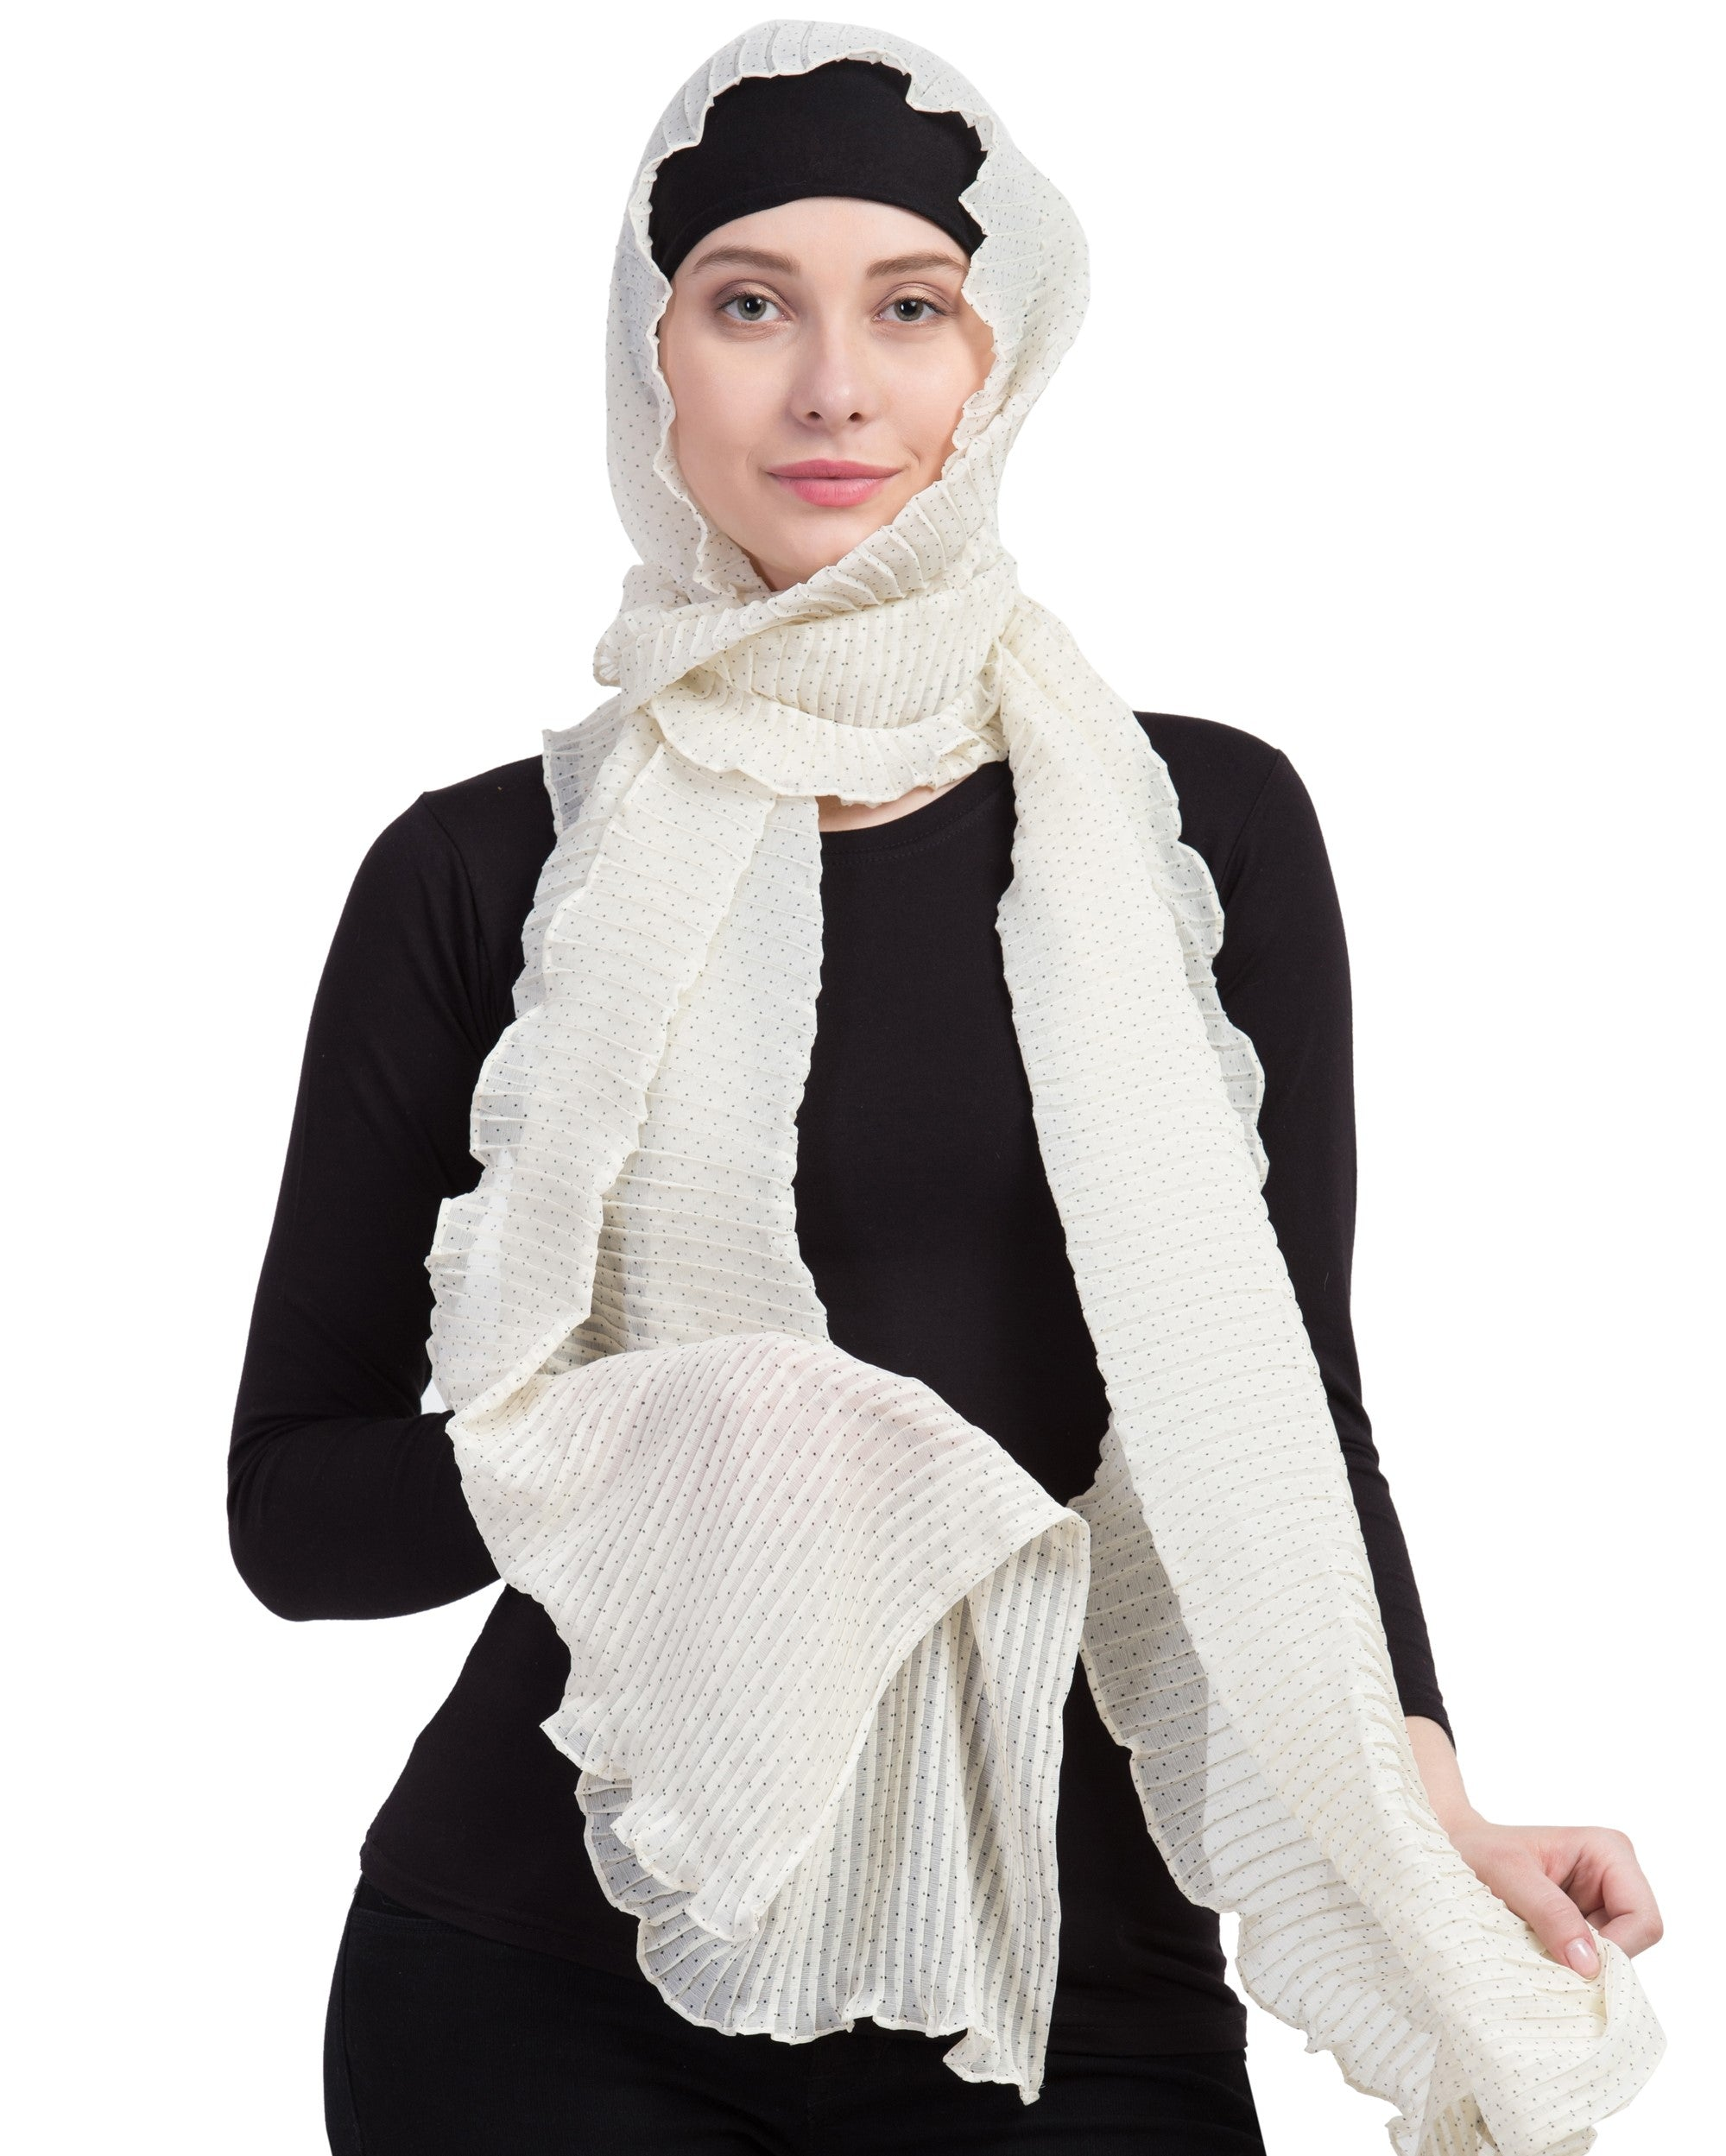 Ruqsar Pleated Polkas Headscarf